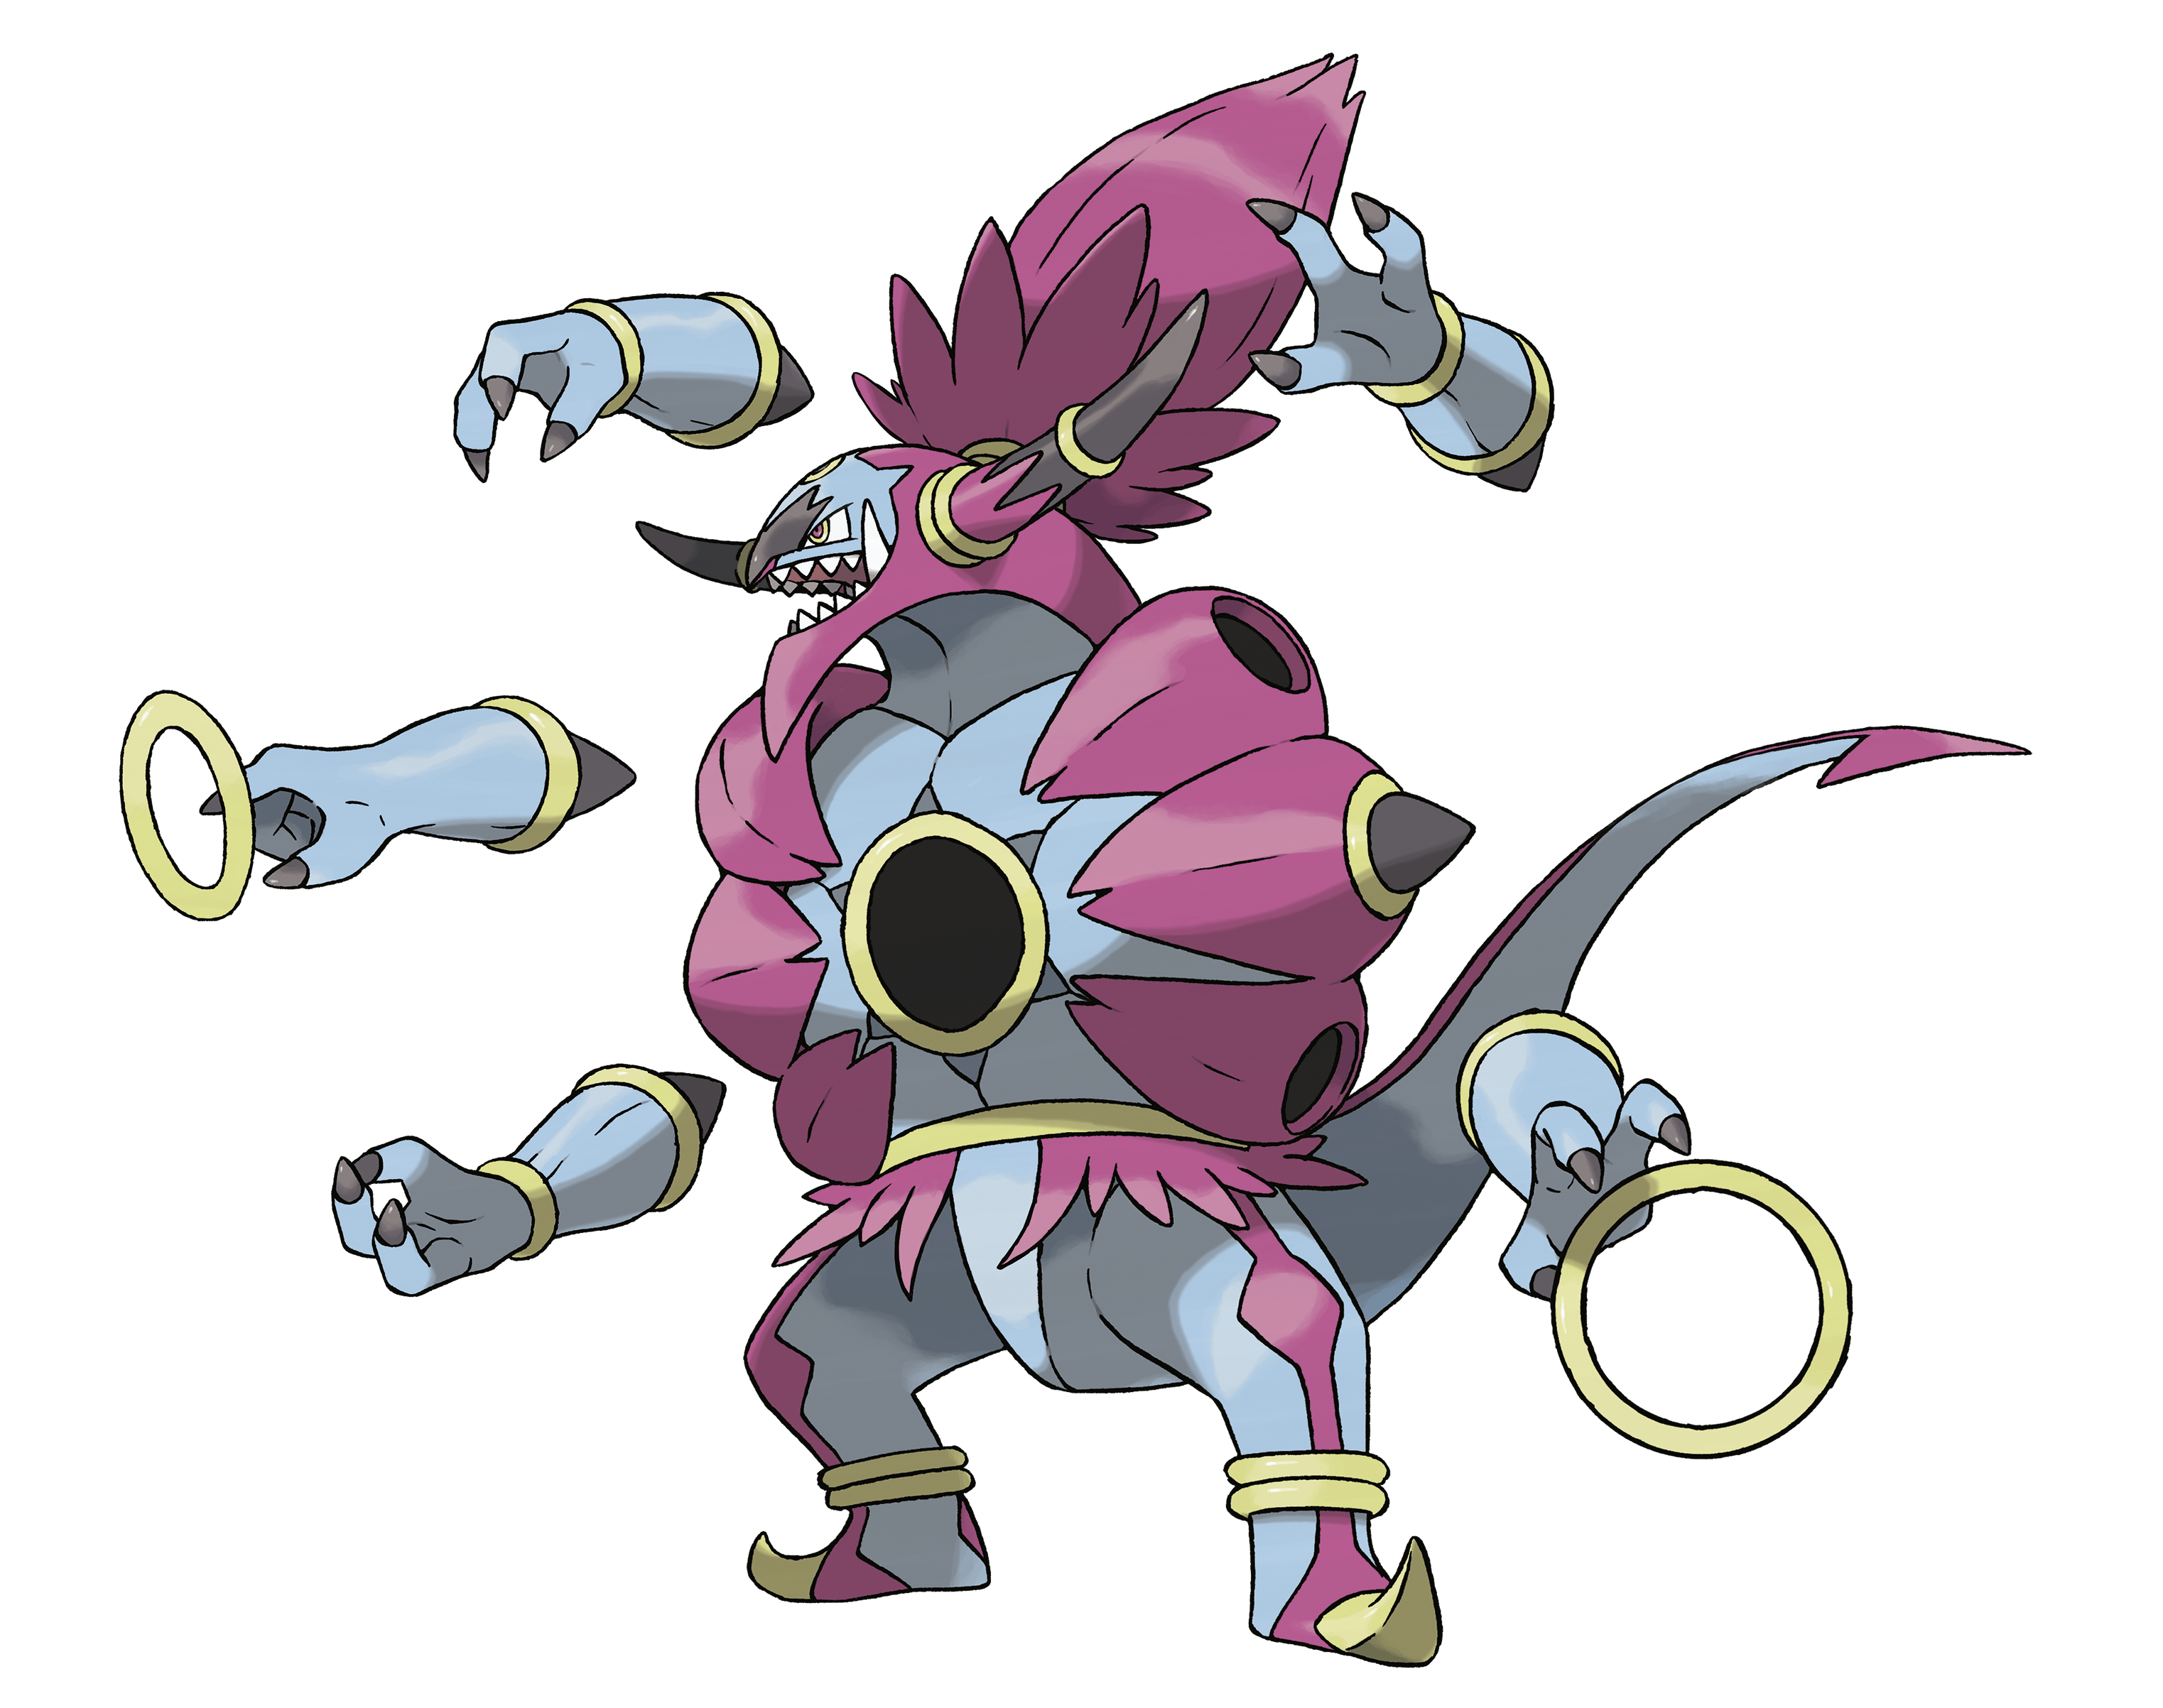 Legendary Pokemon Hoopa Event Coming Soon Capsule Computers